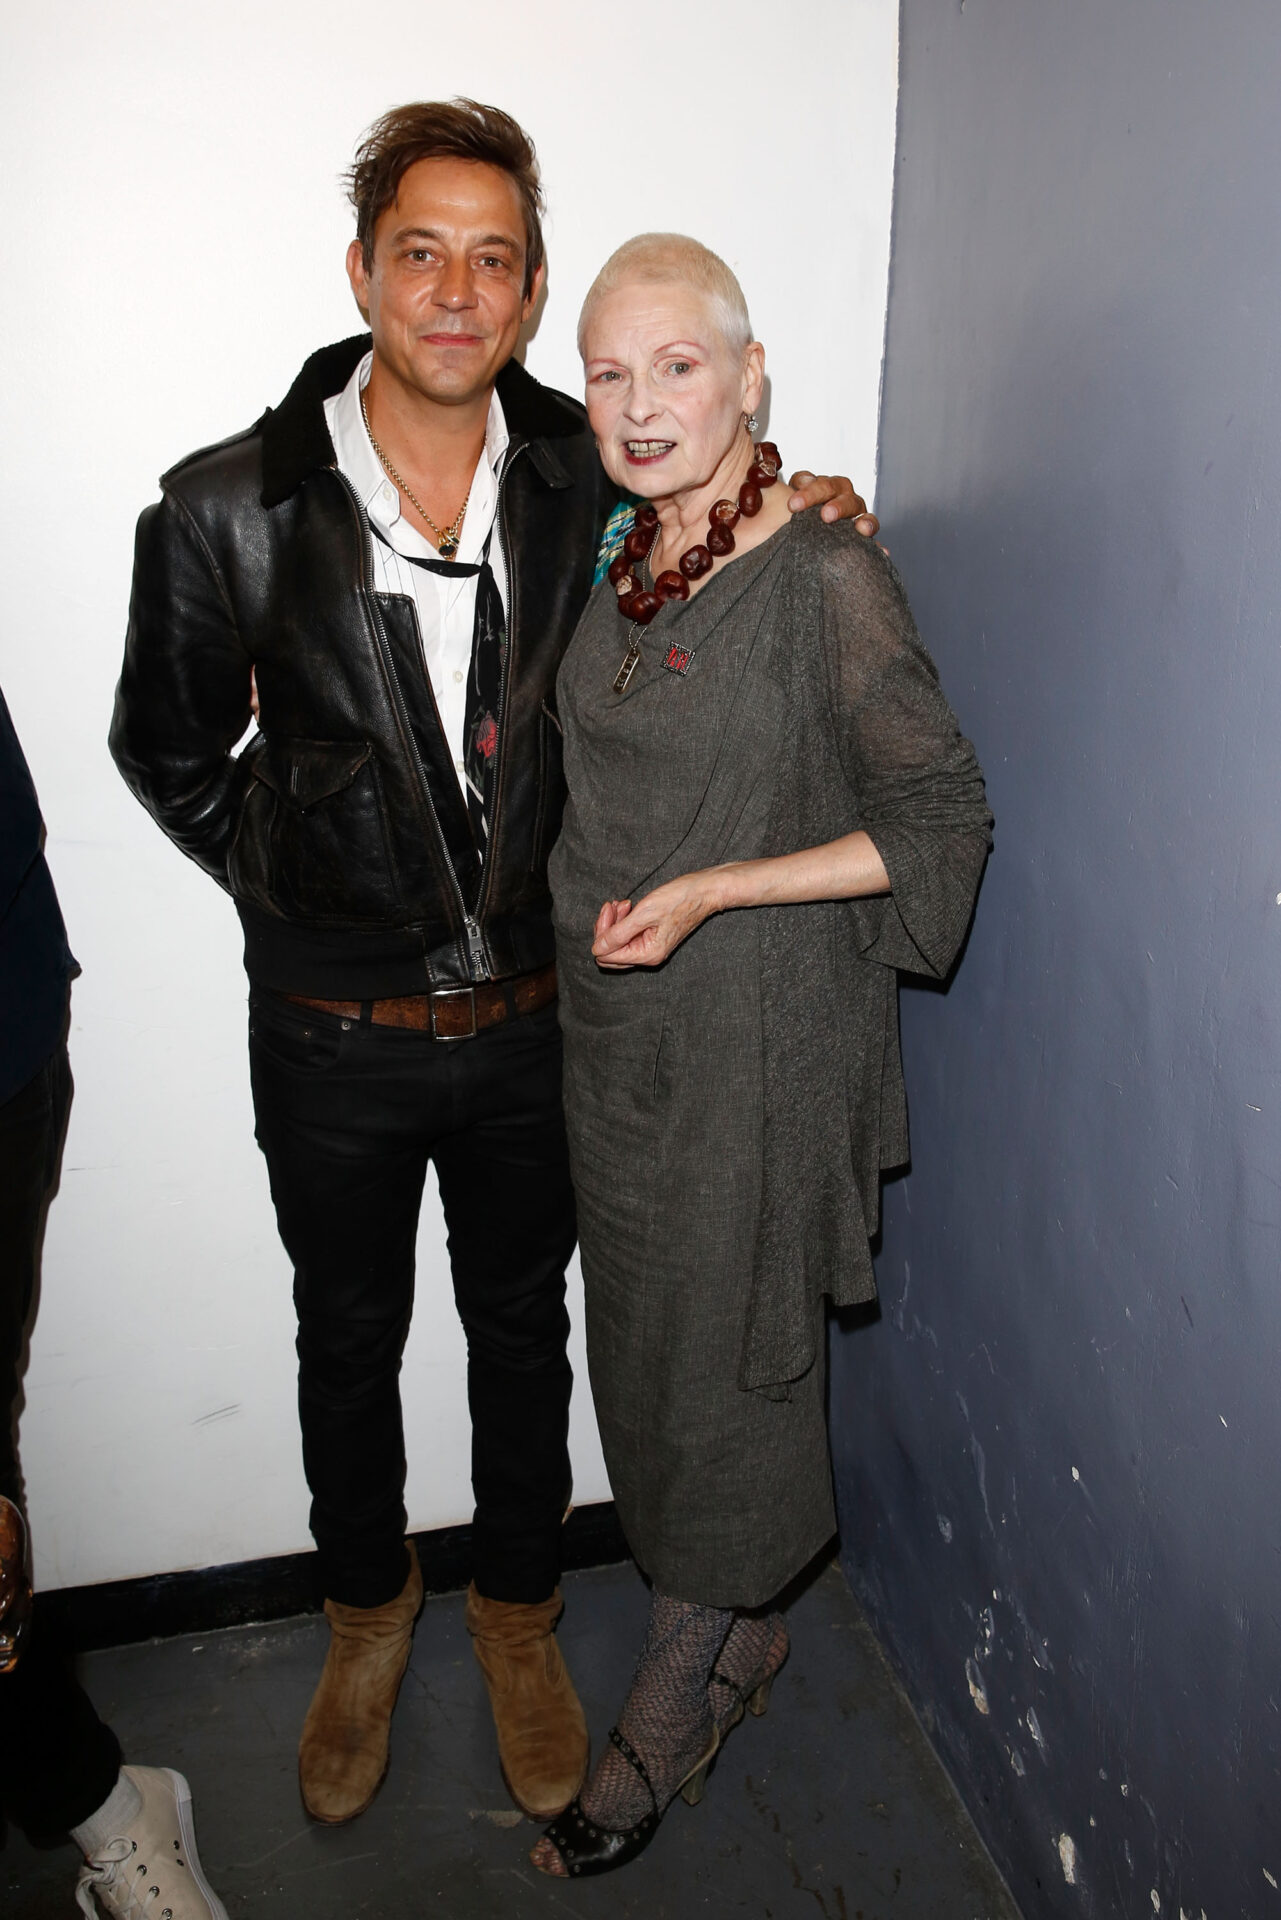 LONDON, ENGLAND - SEPTEMBER 04: Jamie Hince and Vivienne Westwood attend OFFtheGRID London event with Vivienne Westwood, Trillion Fund and Findinginfinity on September 4, 2014 in London, England. (Photo by David M. Benett/Getty Images for Vivienne Westwood / Trillion Fund / Findinginfinity) *** Local Caption *** Jamie Hince; Vivienne Westwood